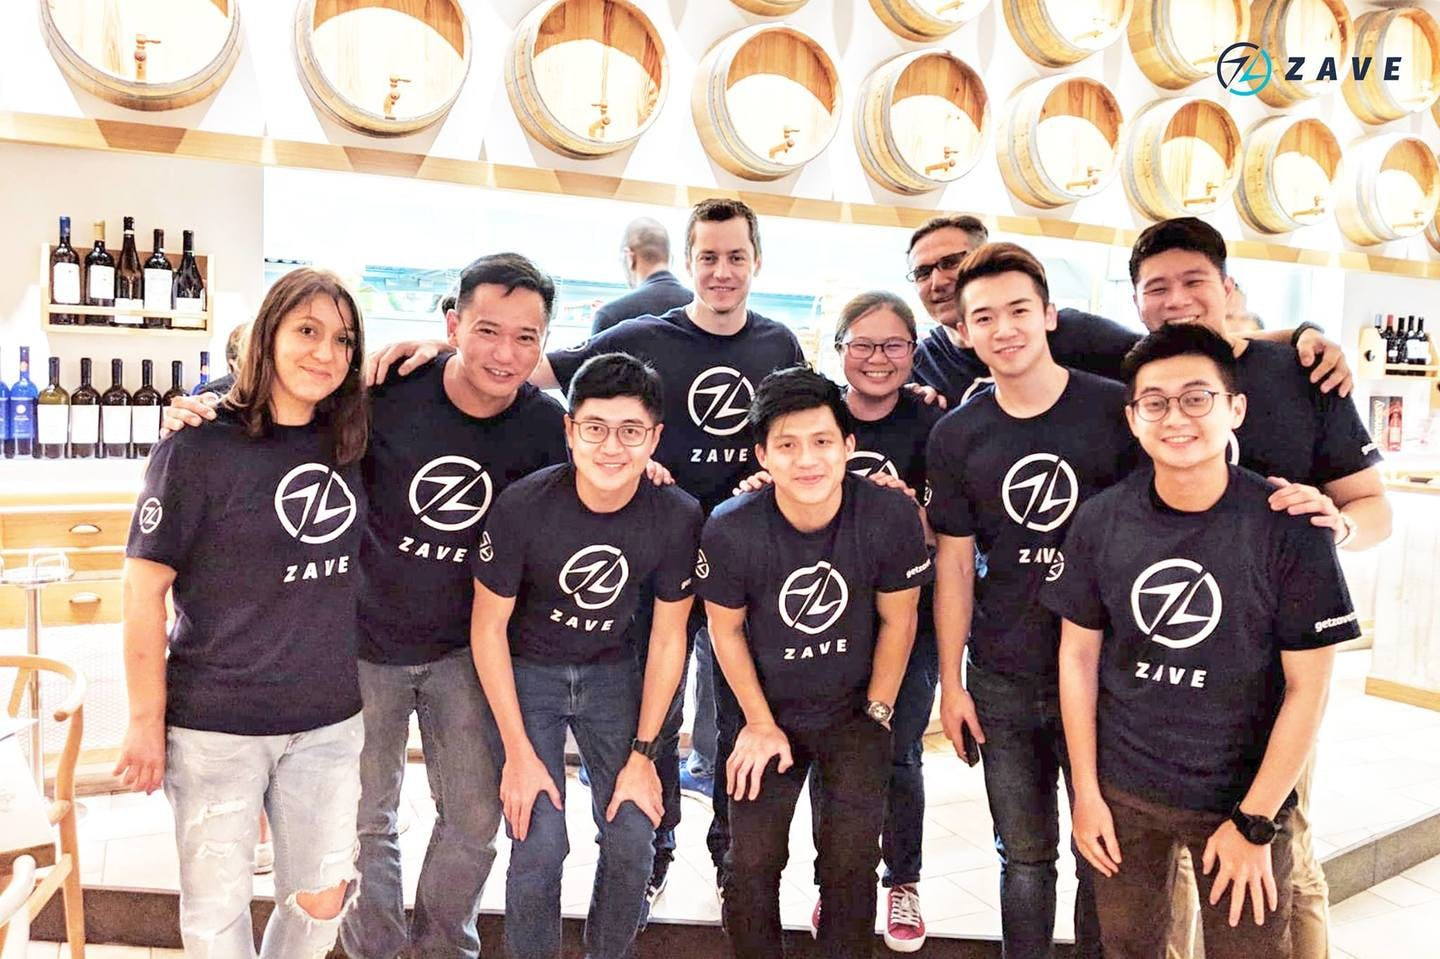 Zave employees group photo